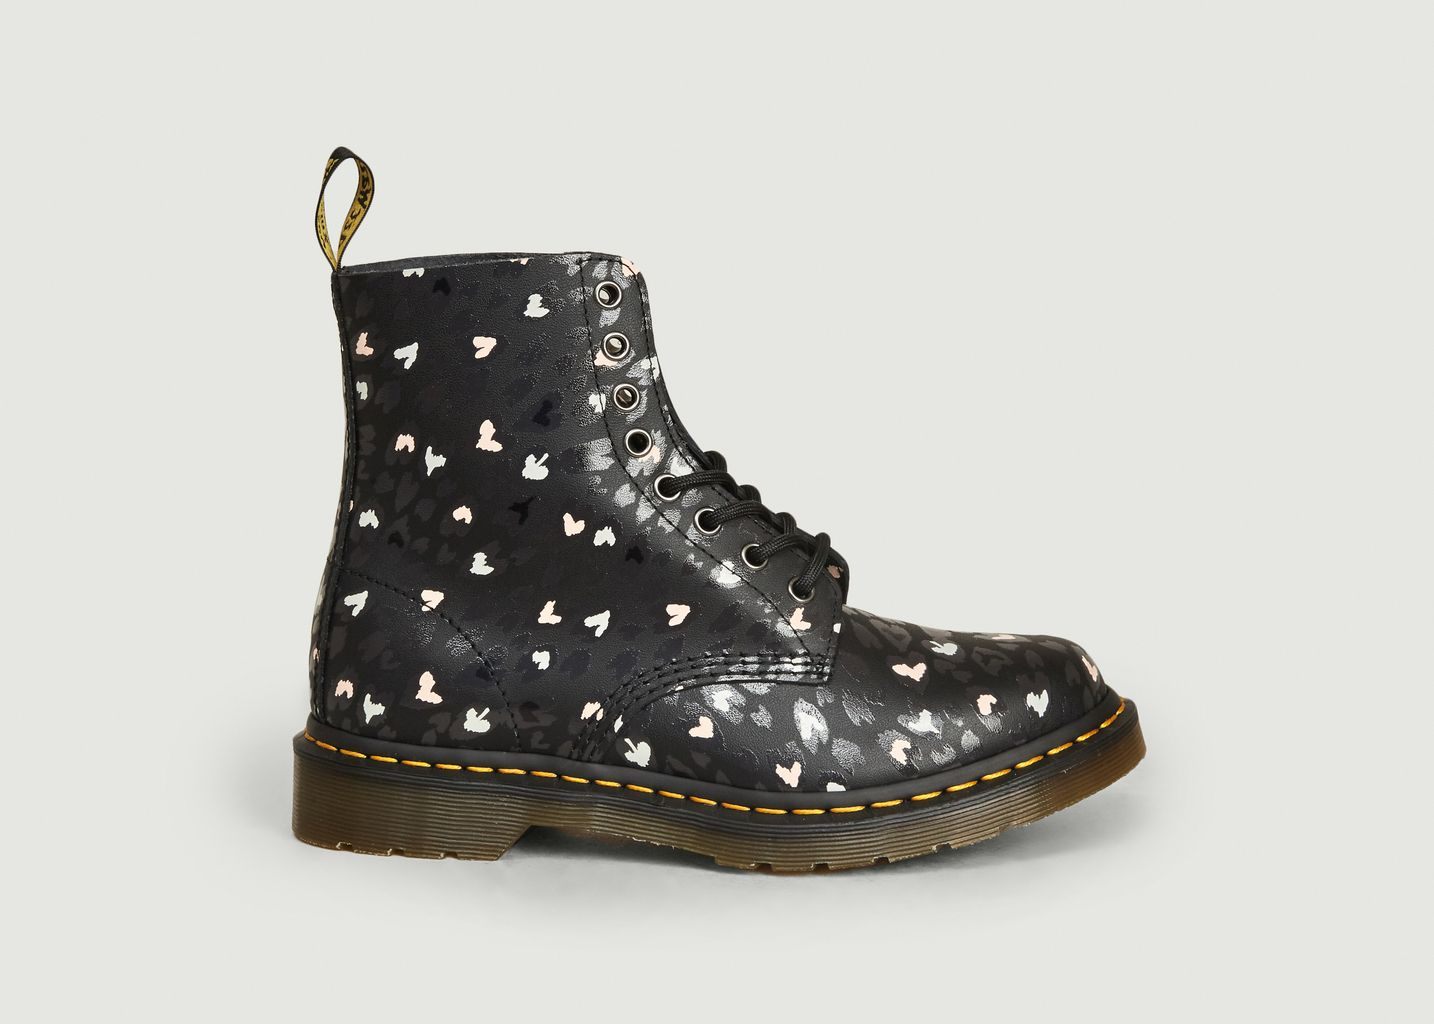 Boots 1460 Pascal Wild Hearts - Dr. Martens